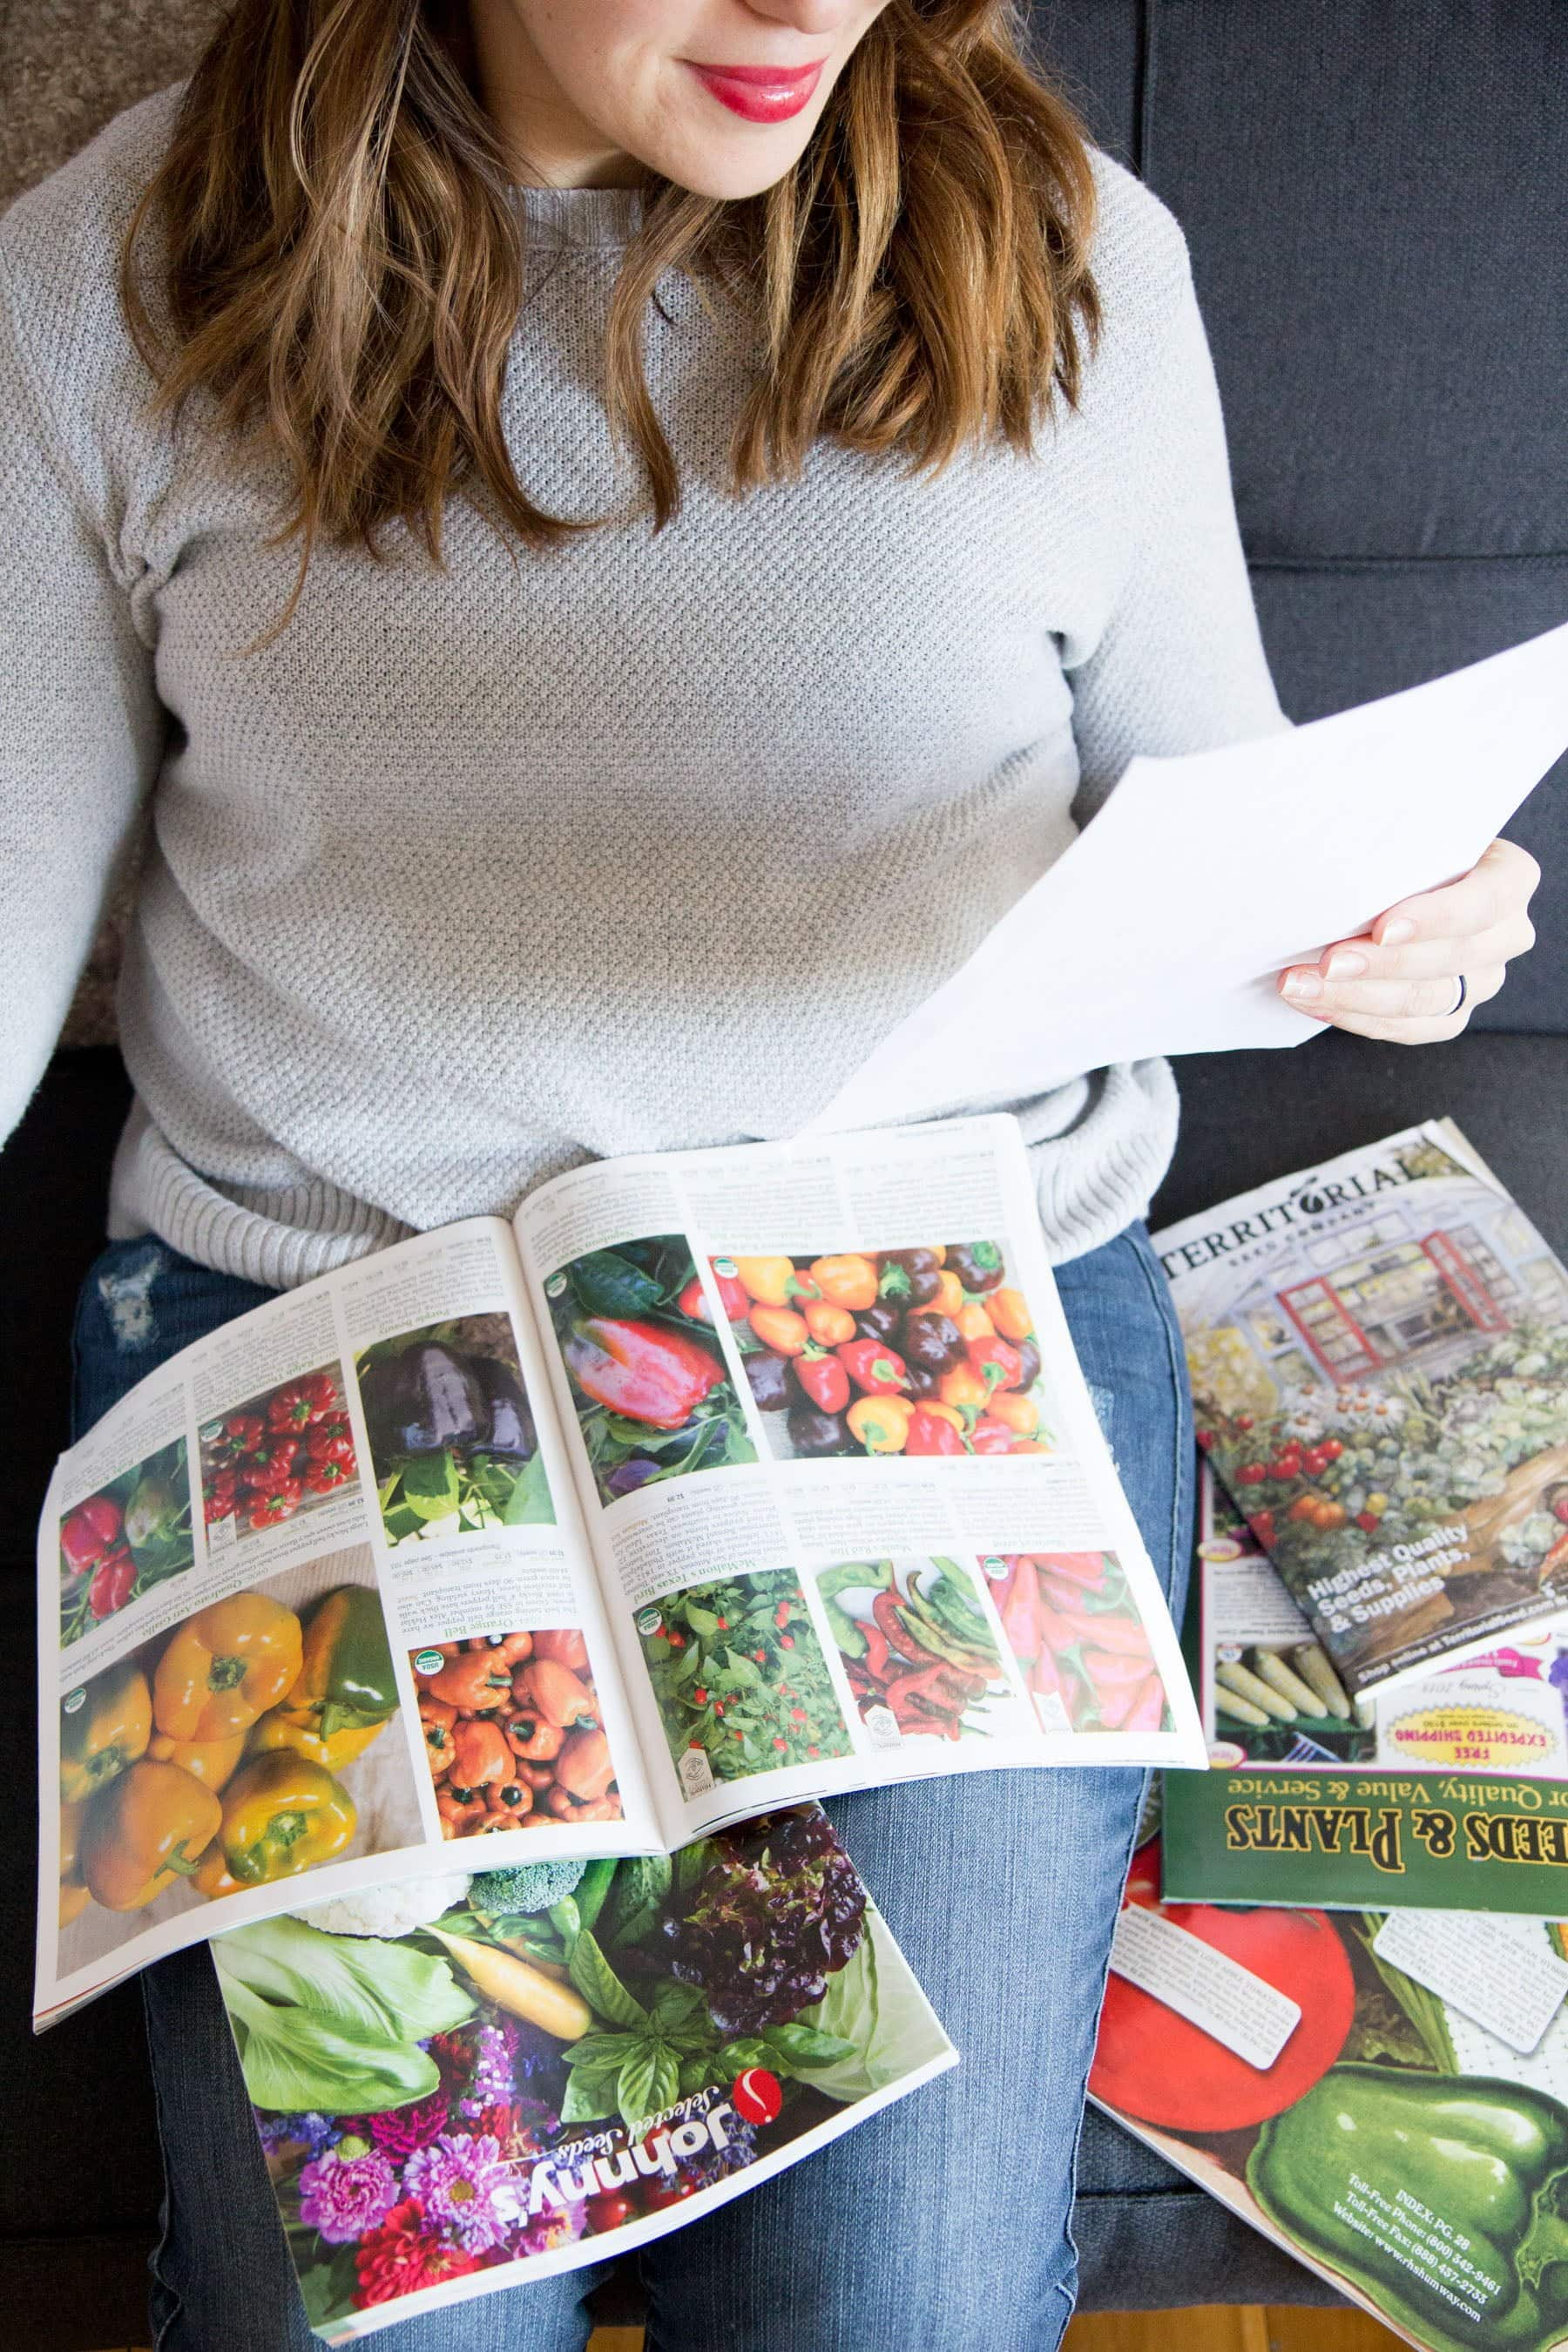 Woman in a gray shirt looking through seed catalogs for organic vegetable seeds